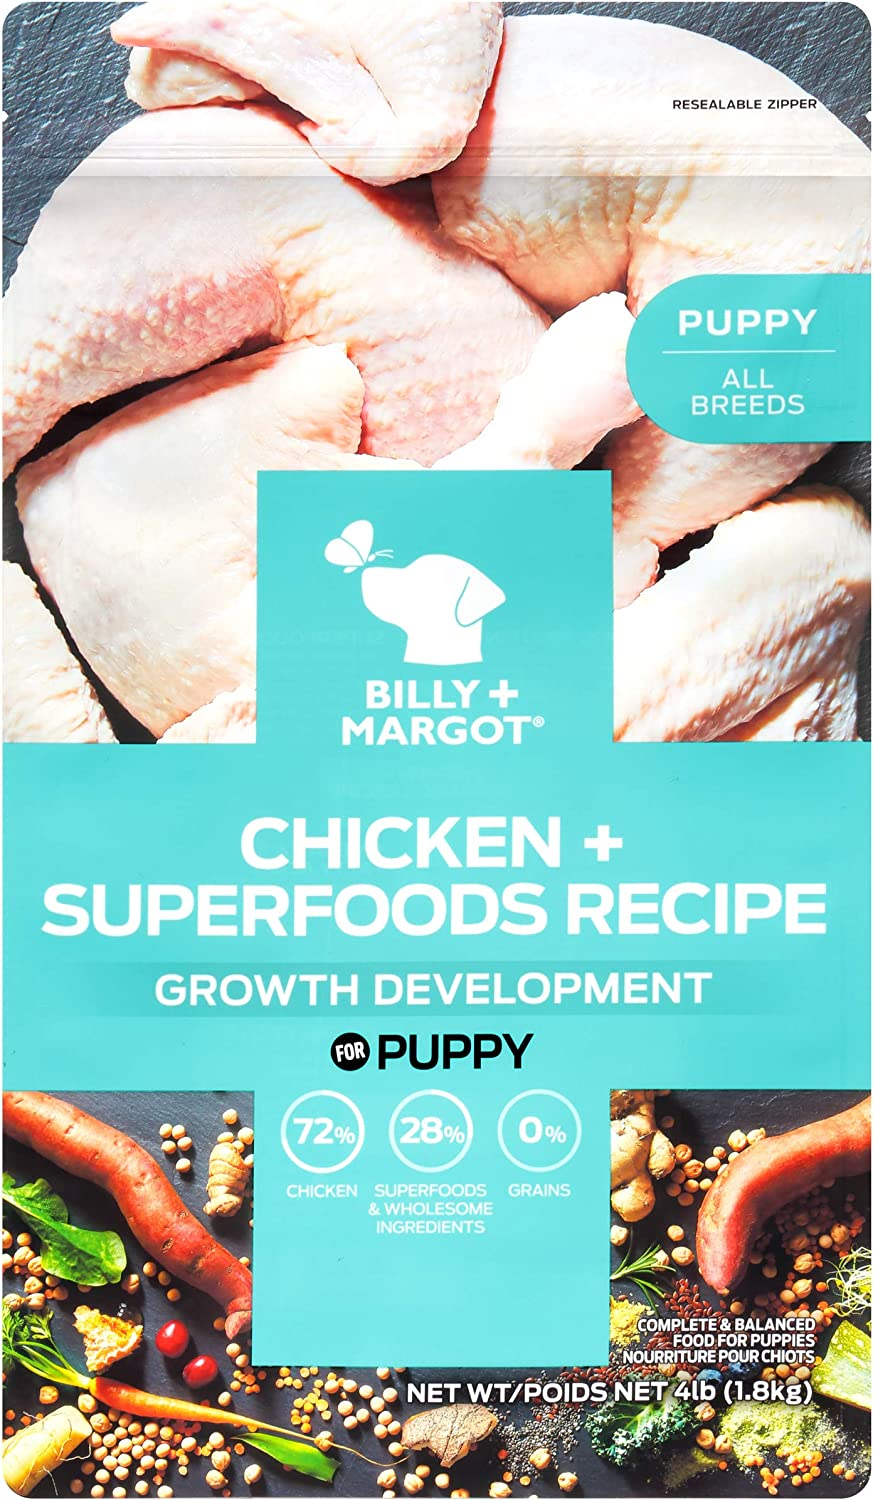 Billy + Margot Puppy + Superfood Blend Single Animal Protein Grain Free Dry Dog Food